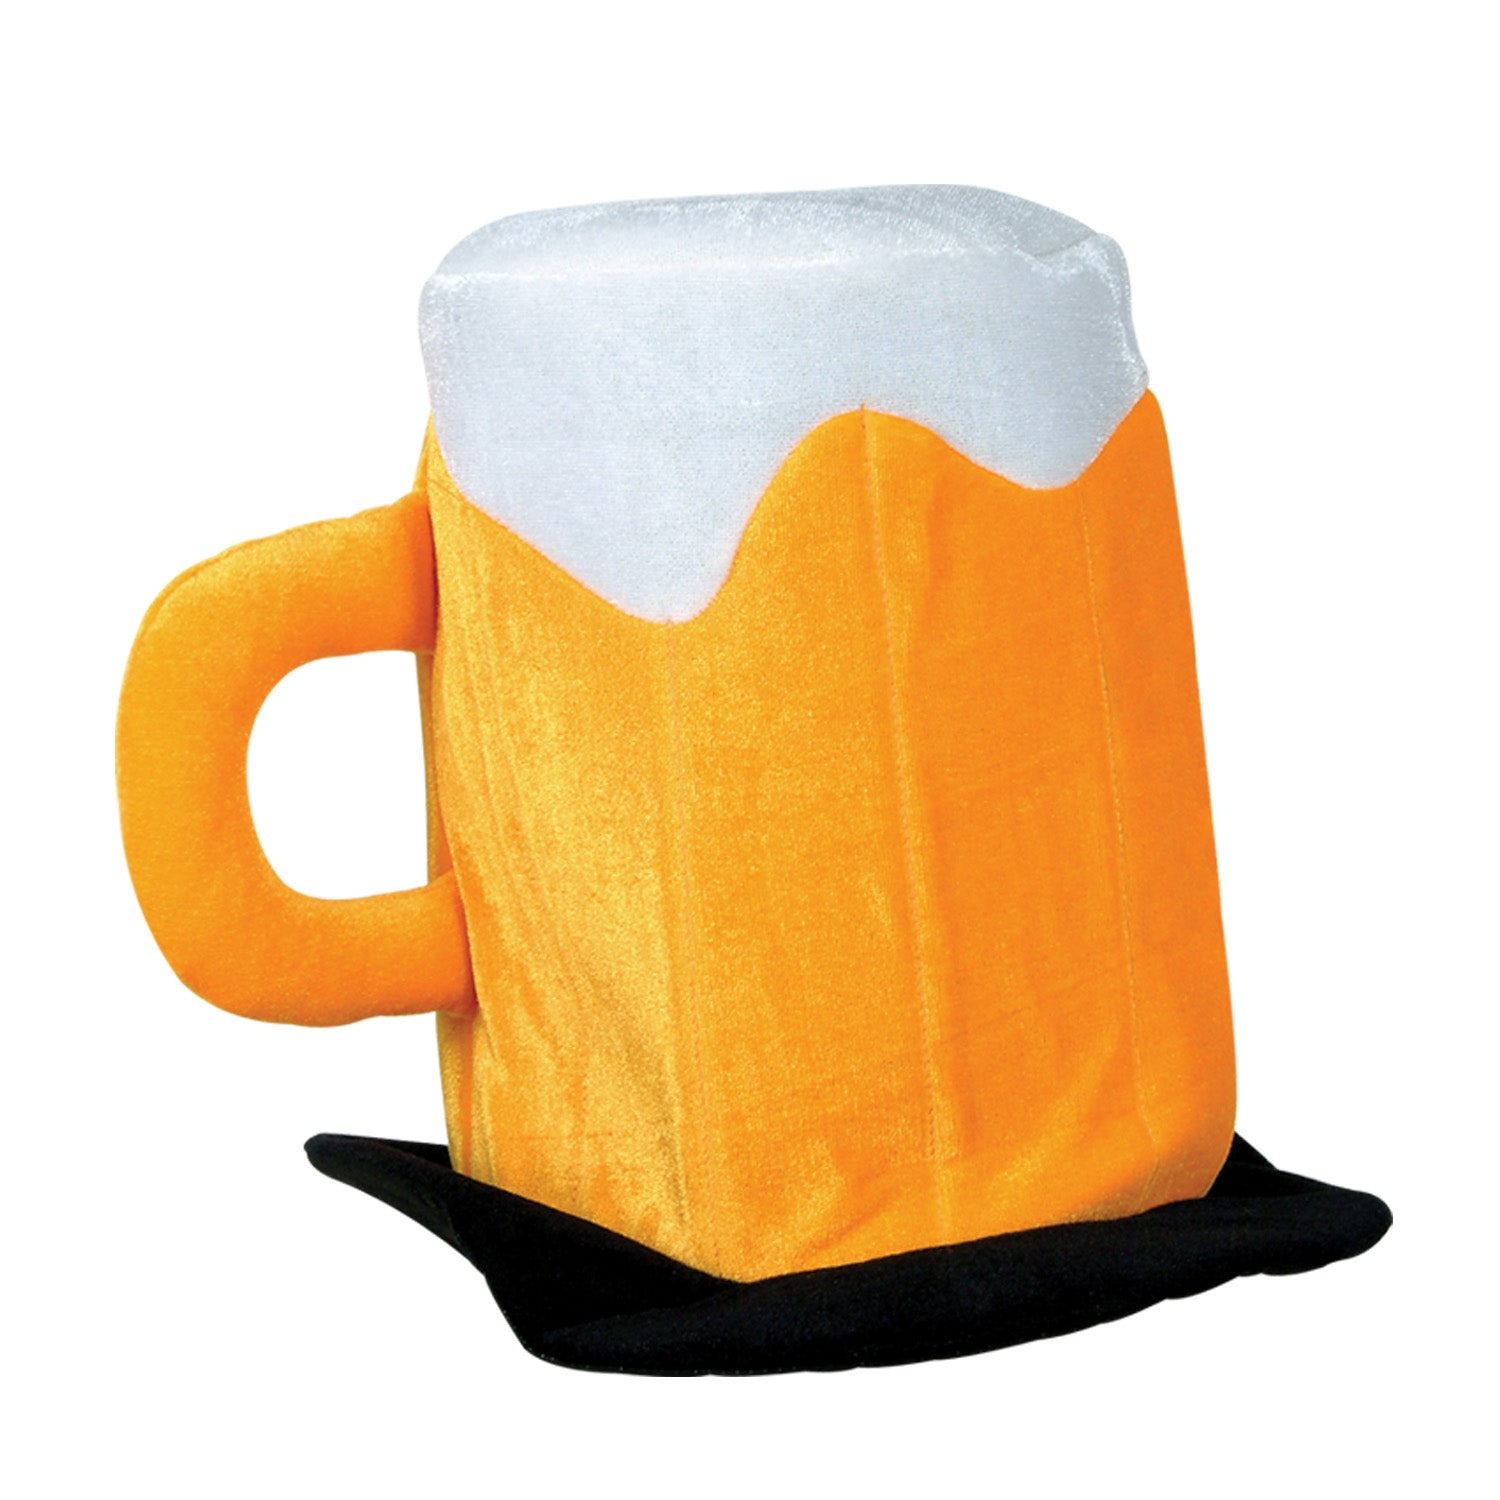 Plush Beer Mug Hat by Beistle - Oktoberfest Theme Decorations